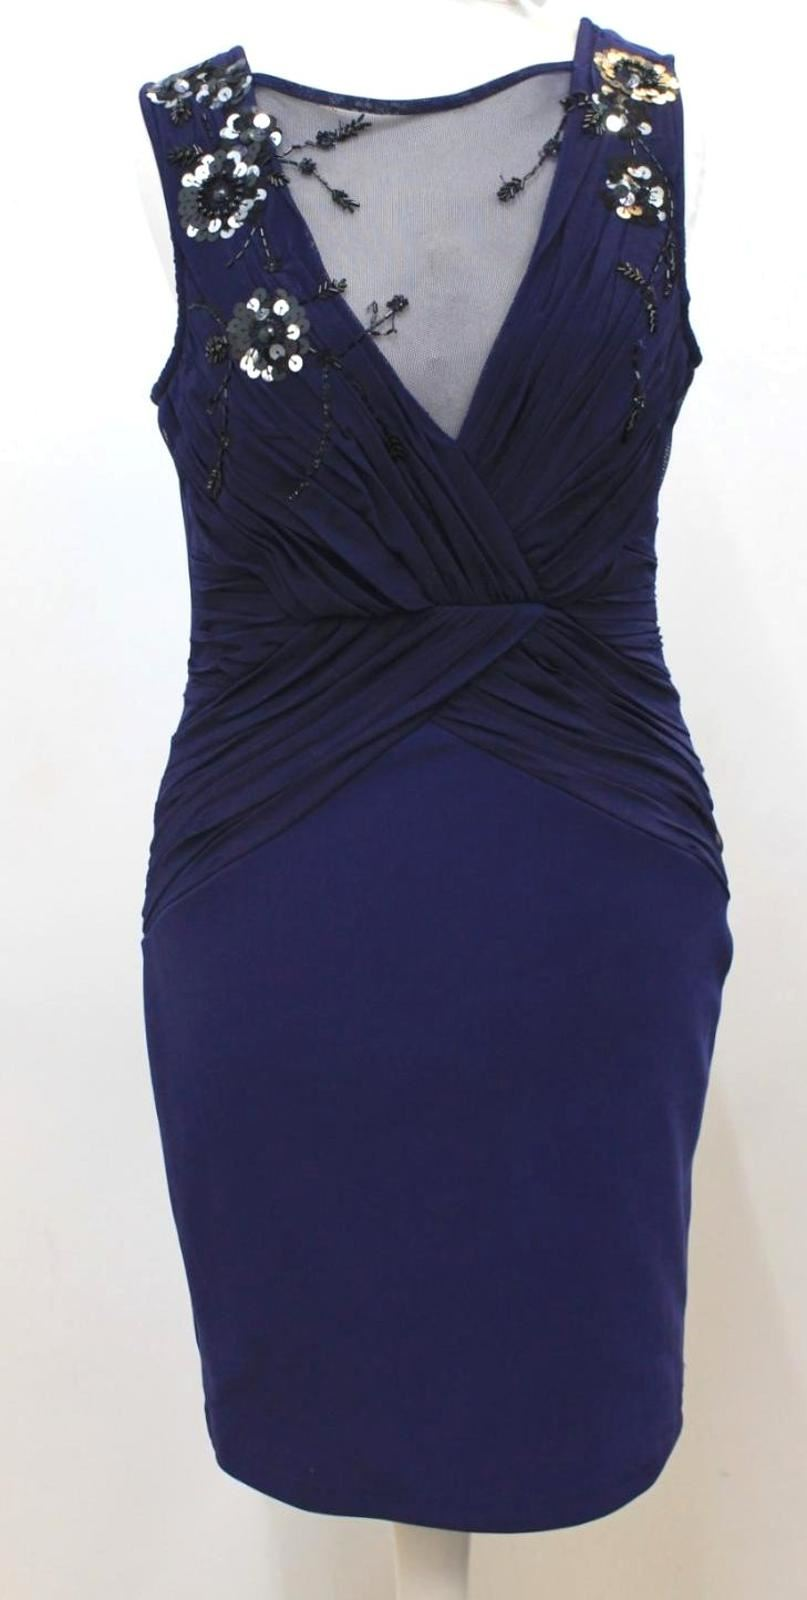 9f2f1ef4cc4 Image is loading LIPSY-LONDON-Ladies-Royal-Blue-Lace-Sequin-Sleeveless-